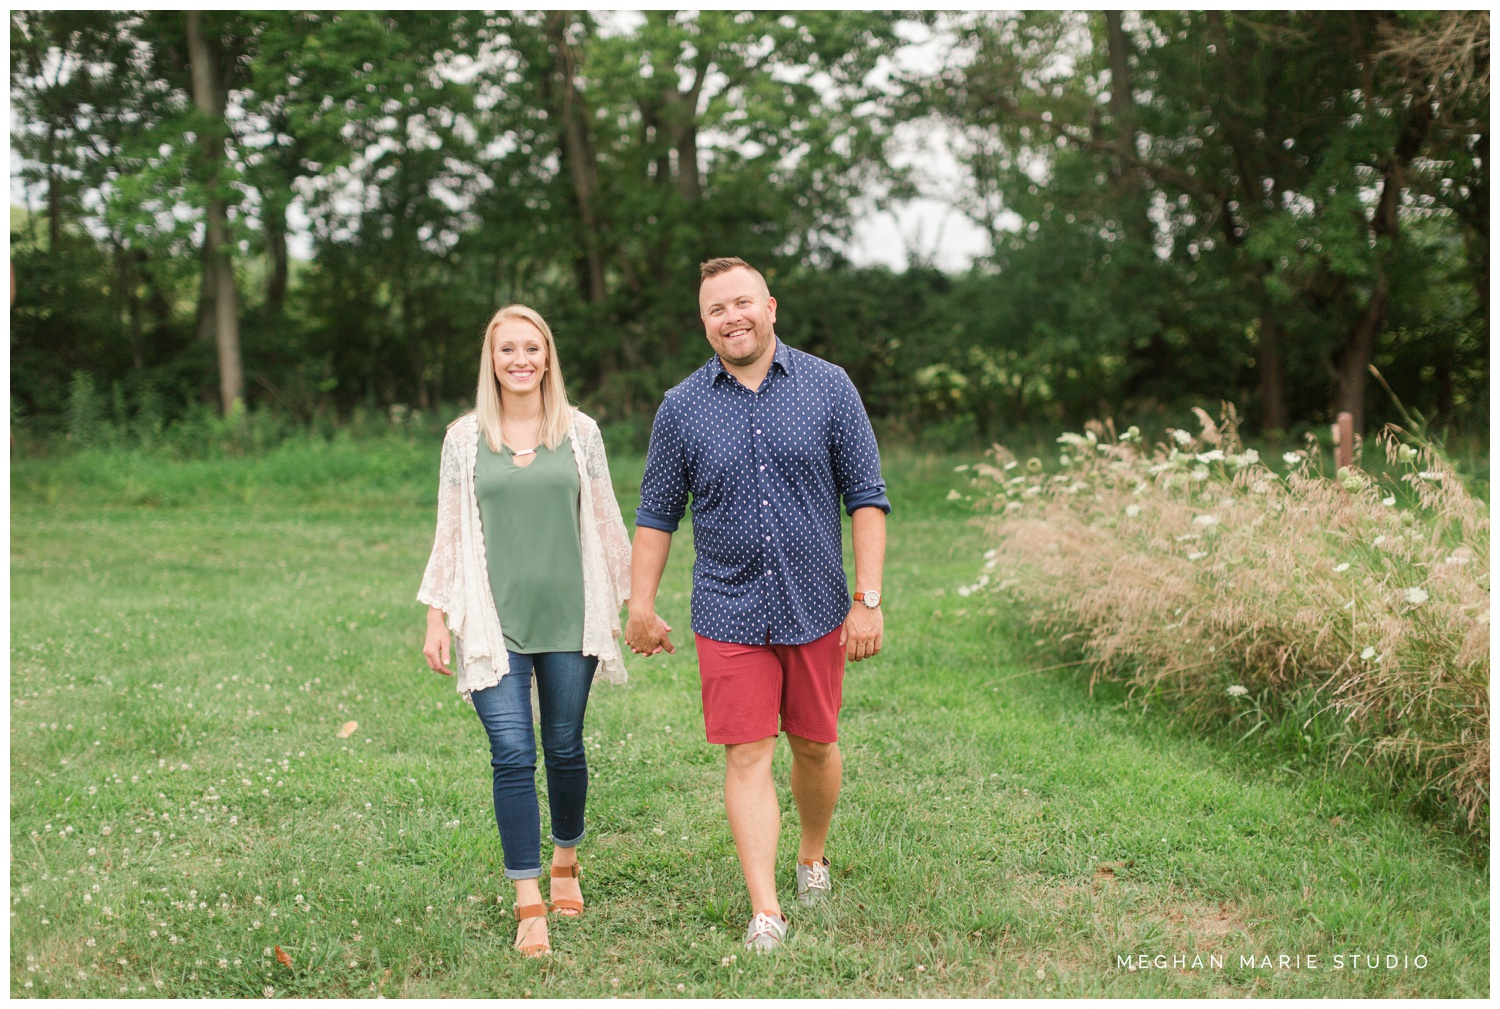 meghan marie studio ohio dayton troy photographer wedding photography engagement alex kaila family honeycreek preserve champagne downtown courthouse urban rural earth toned nature woods barn country city stone fountain elegant_0472.jpg